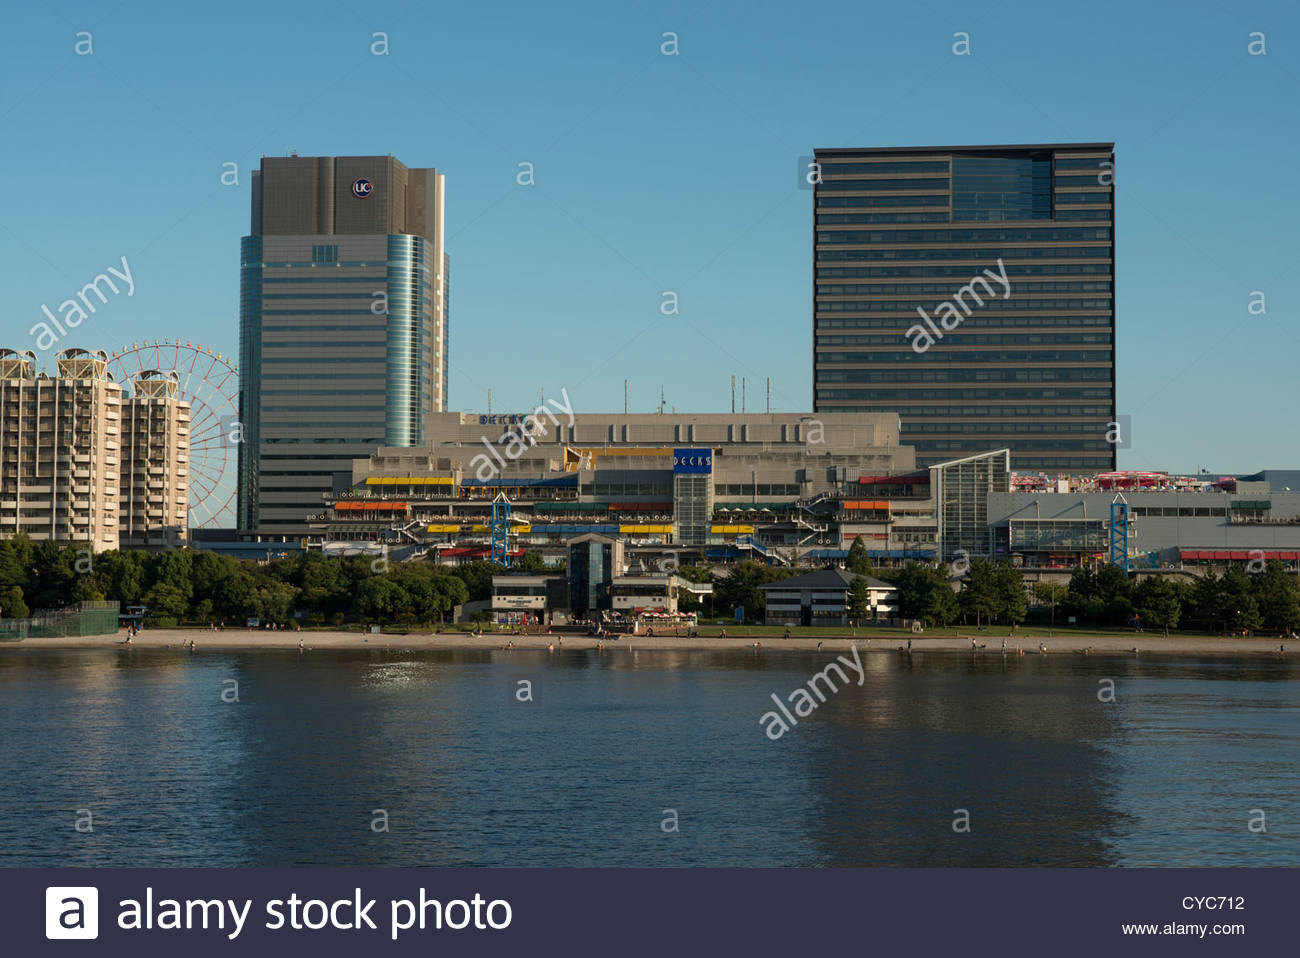 The Decks shopping and entertainment complex in Odaiba Tokyo Japan Stock Photo